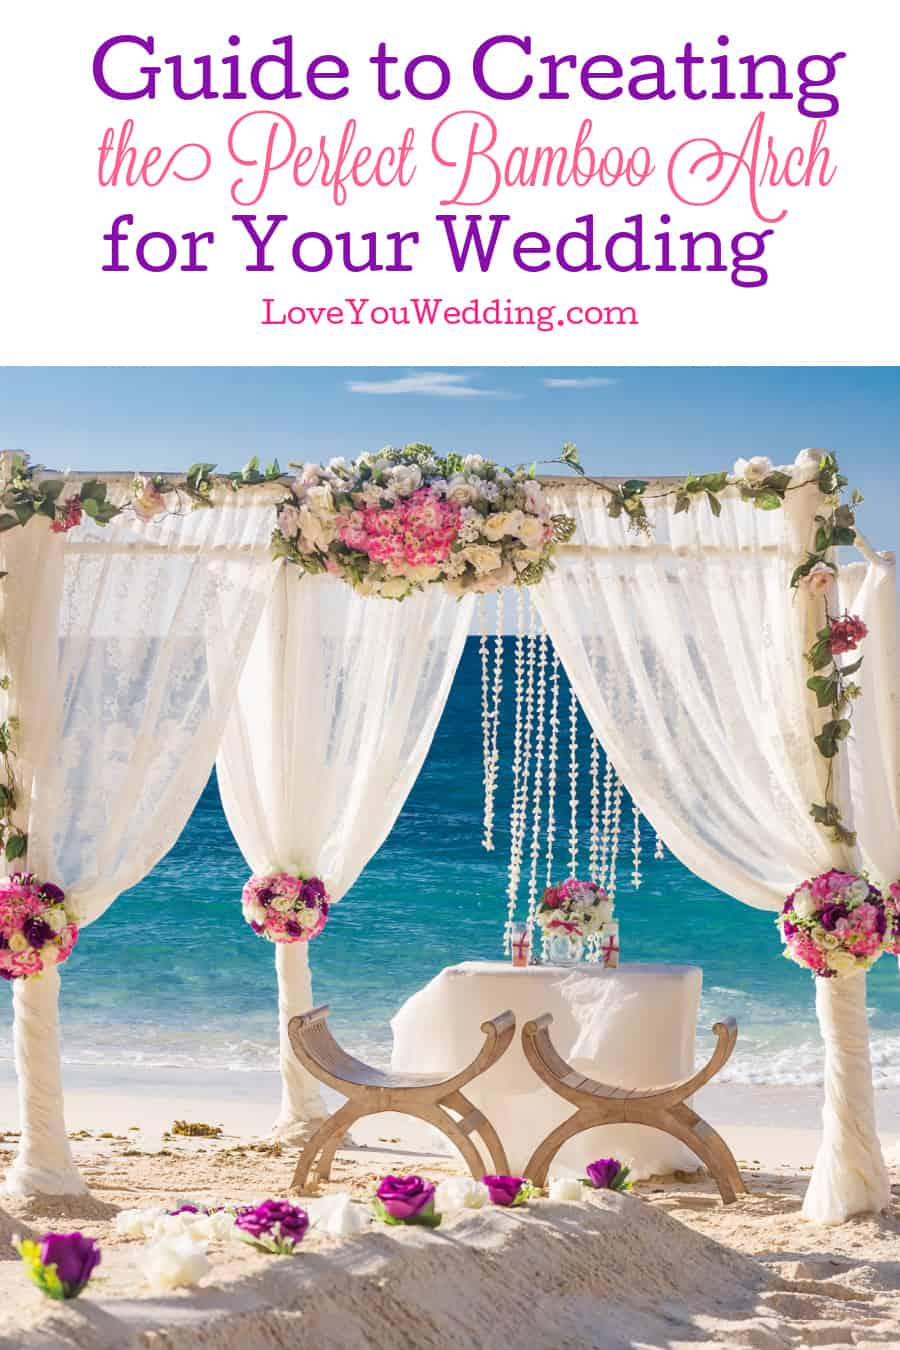 Looking for a great versatile decor idea that is both rustic and elegant, earthy and ethereal? Let is introduce you to the bamboo arch for your wedding!